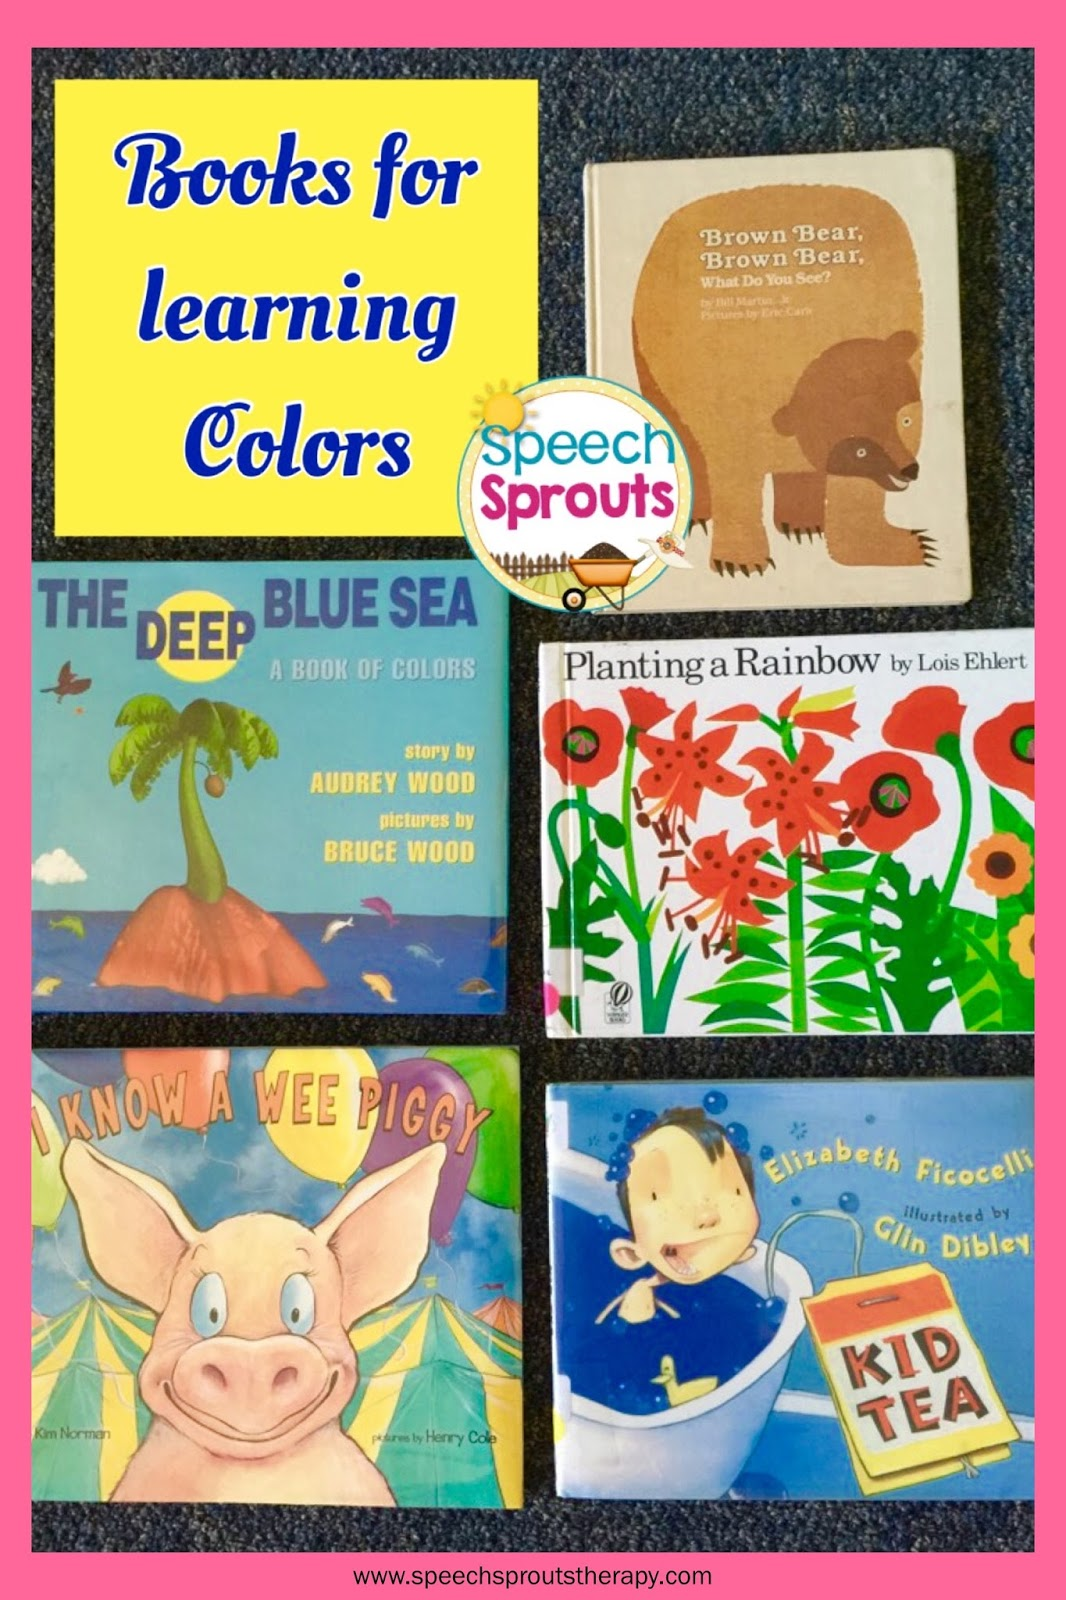 Speech Sprouts: 5 Great Storybooks for Teaching Colors